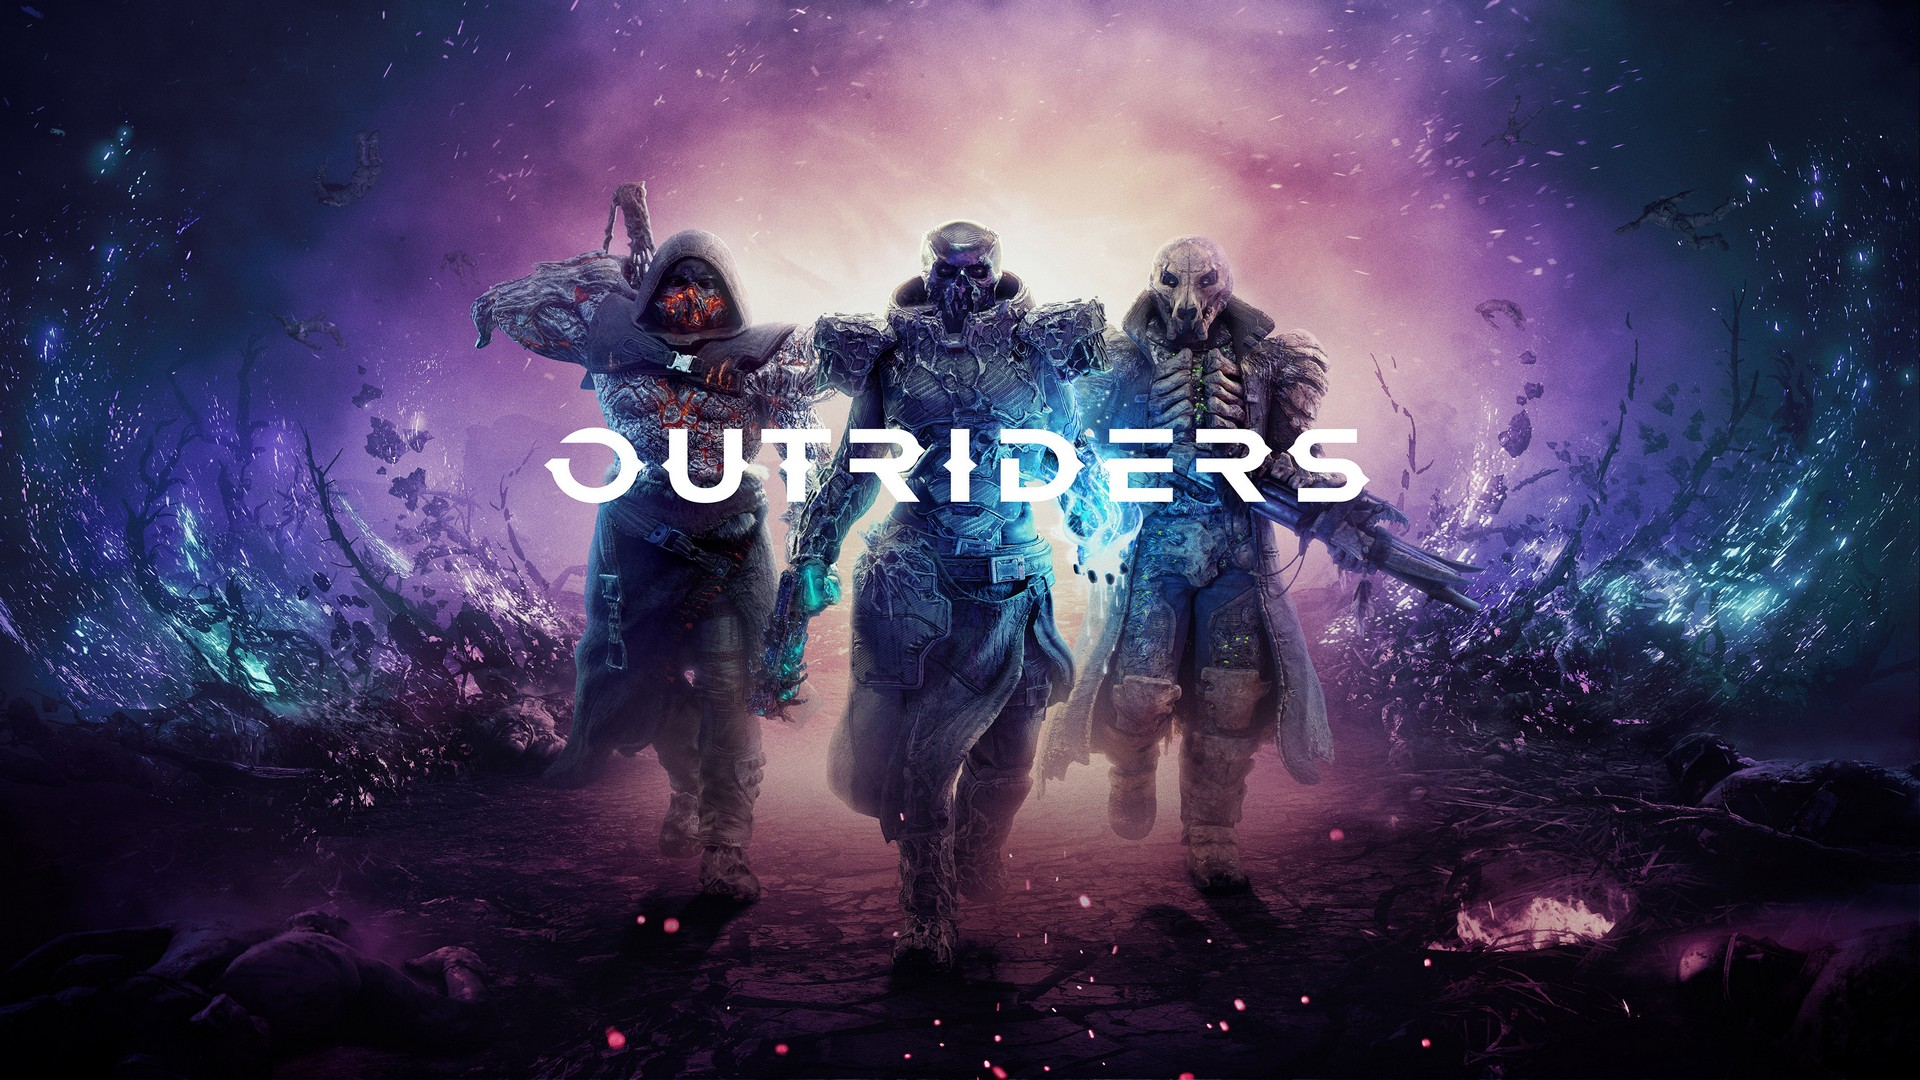 New Outriders Gameplay Revealed